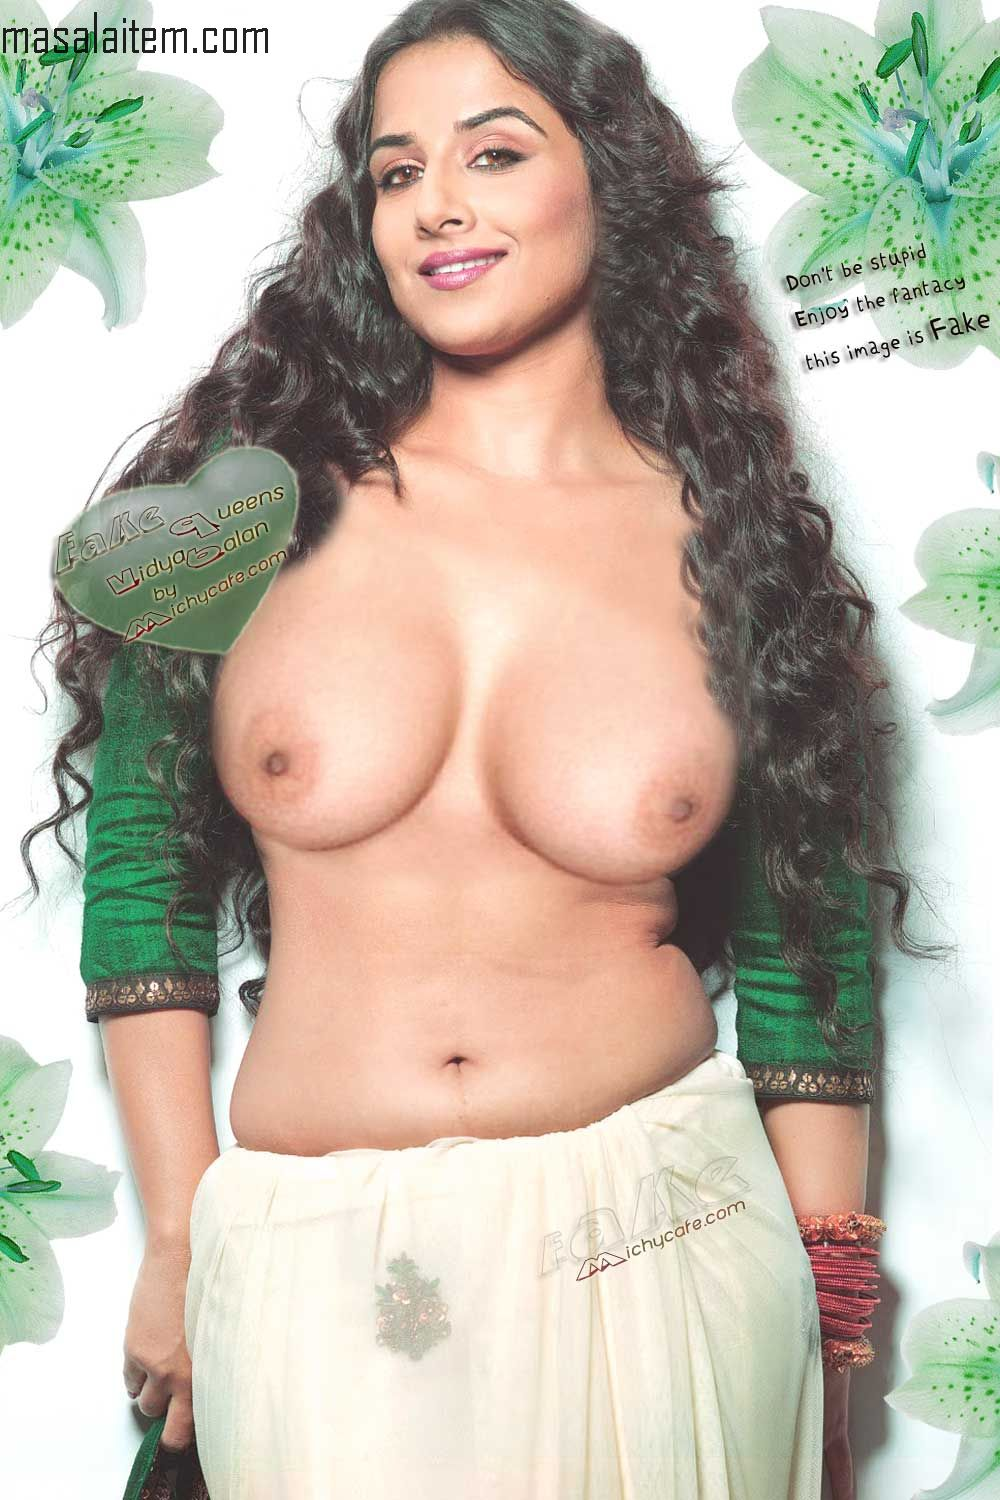 Imagine how Vidya Balan's naked breasts would look in your fantasy.